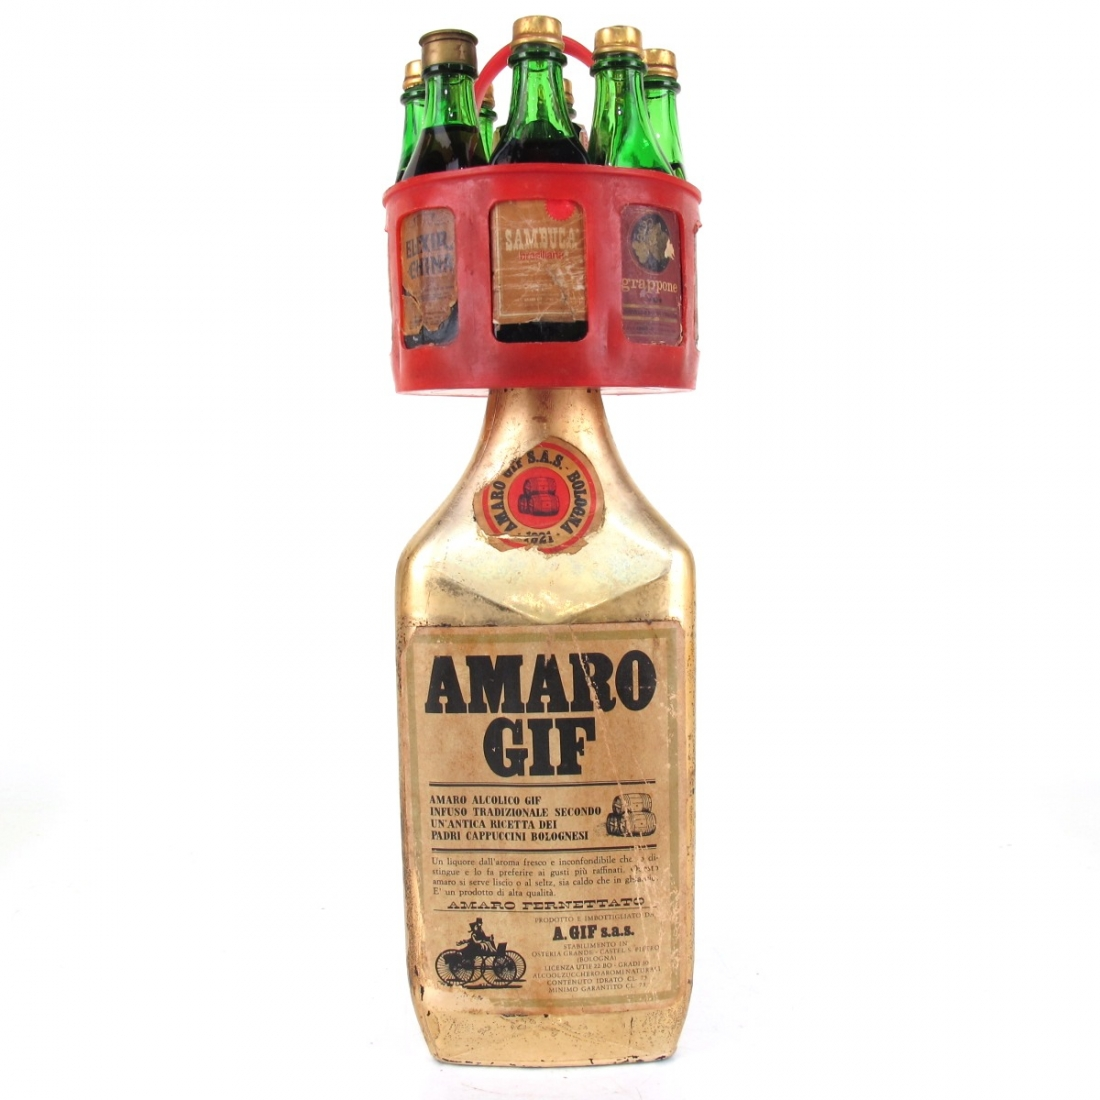 Amaro Gif 1970s / Including Miniature Selection